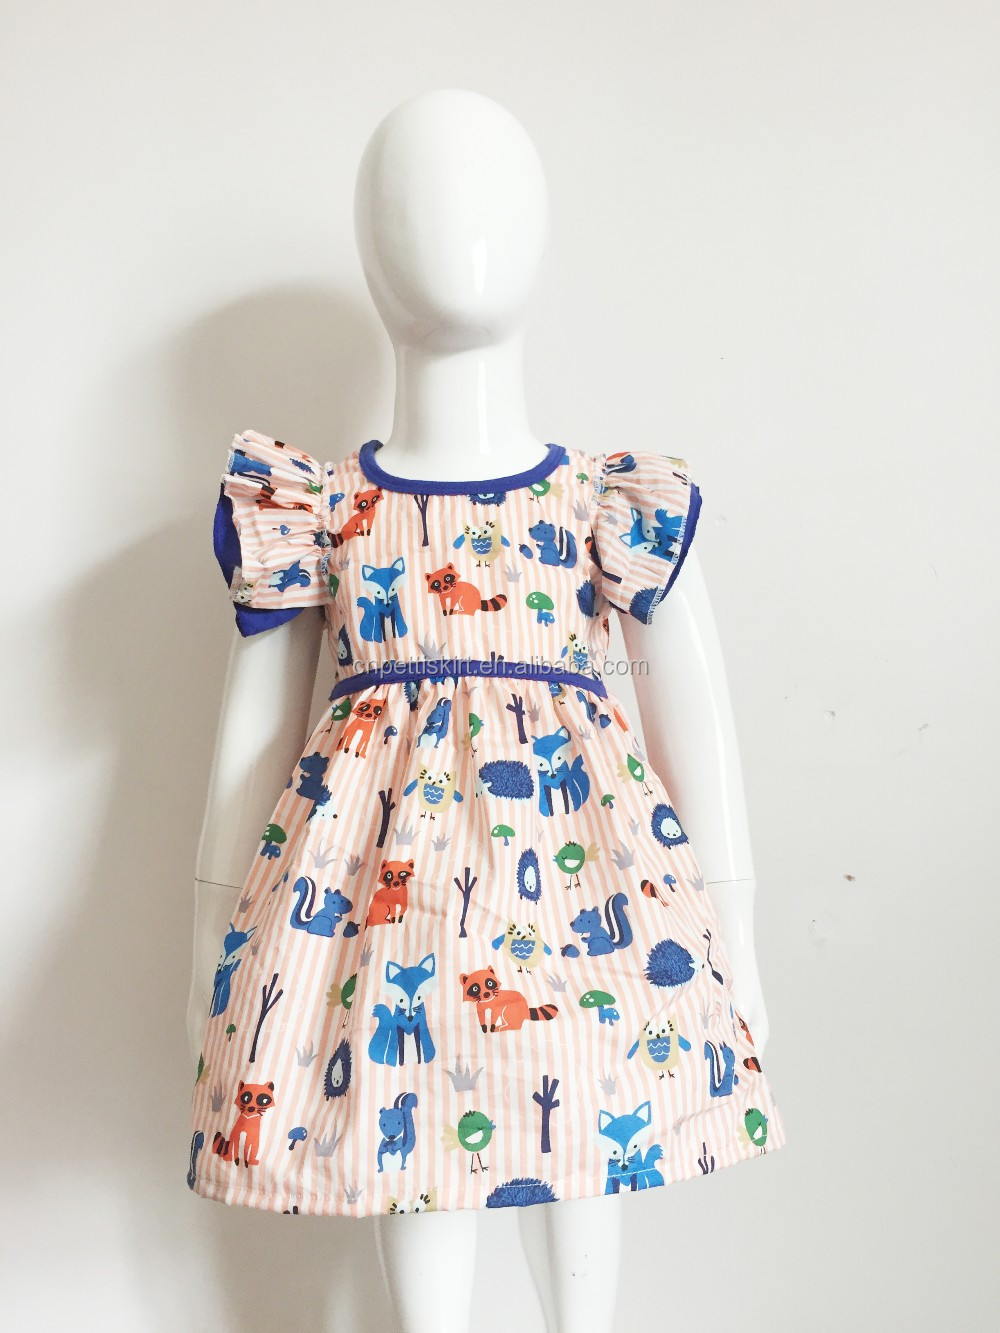 2017 new arrival cute cartoon printing baby frock design pictures wholesale boutique pretty princess dress